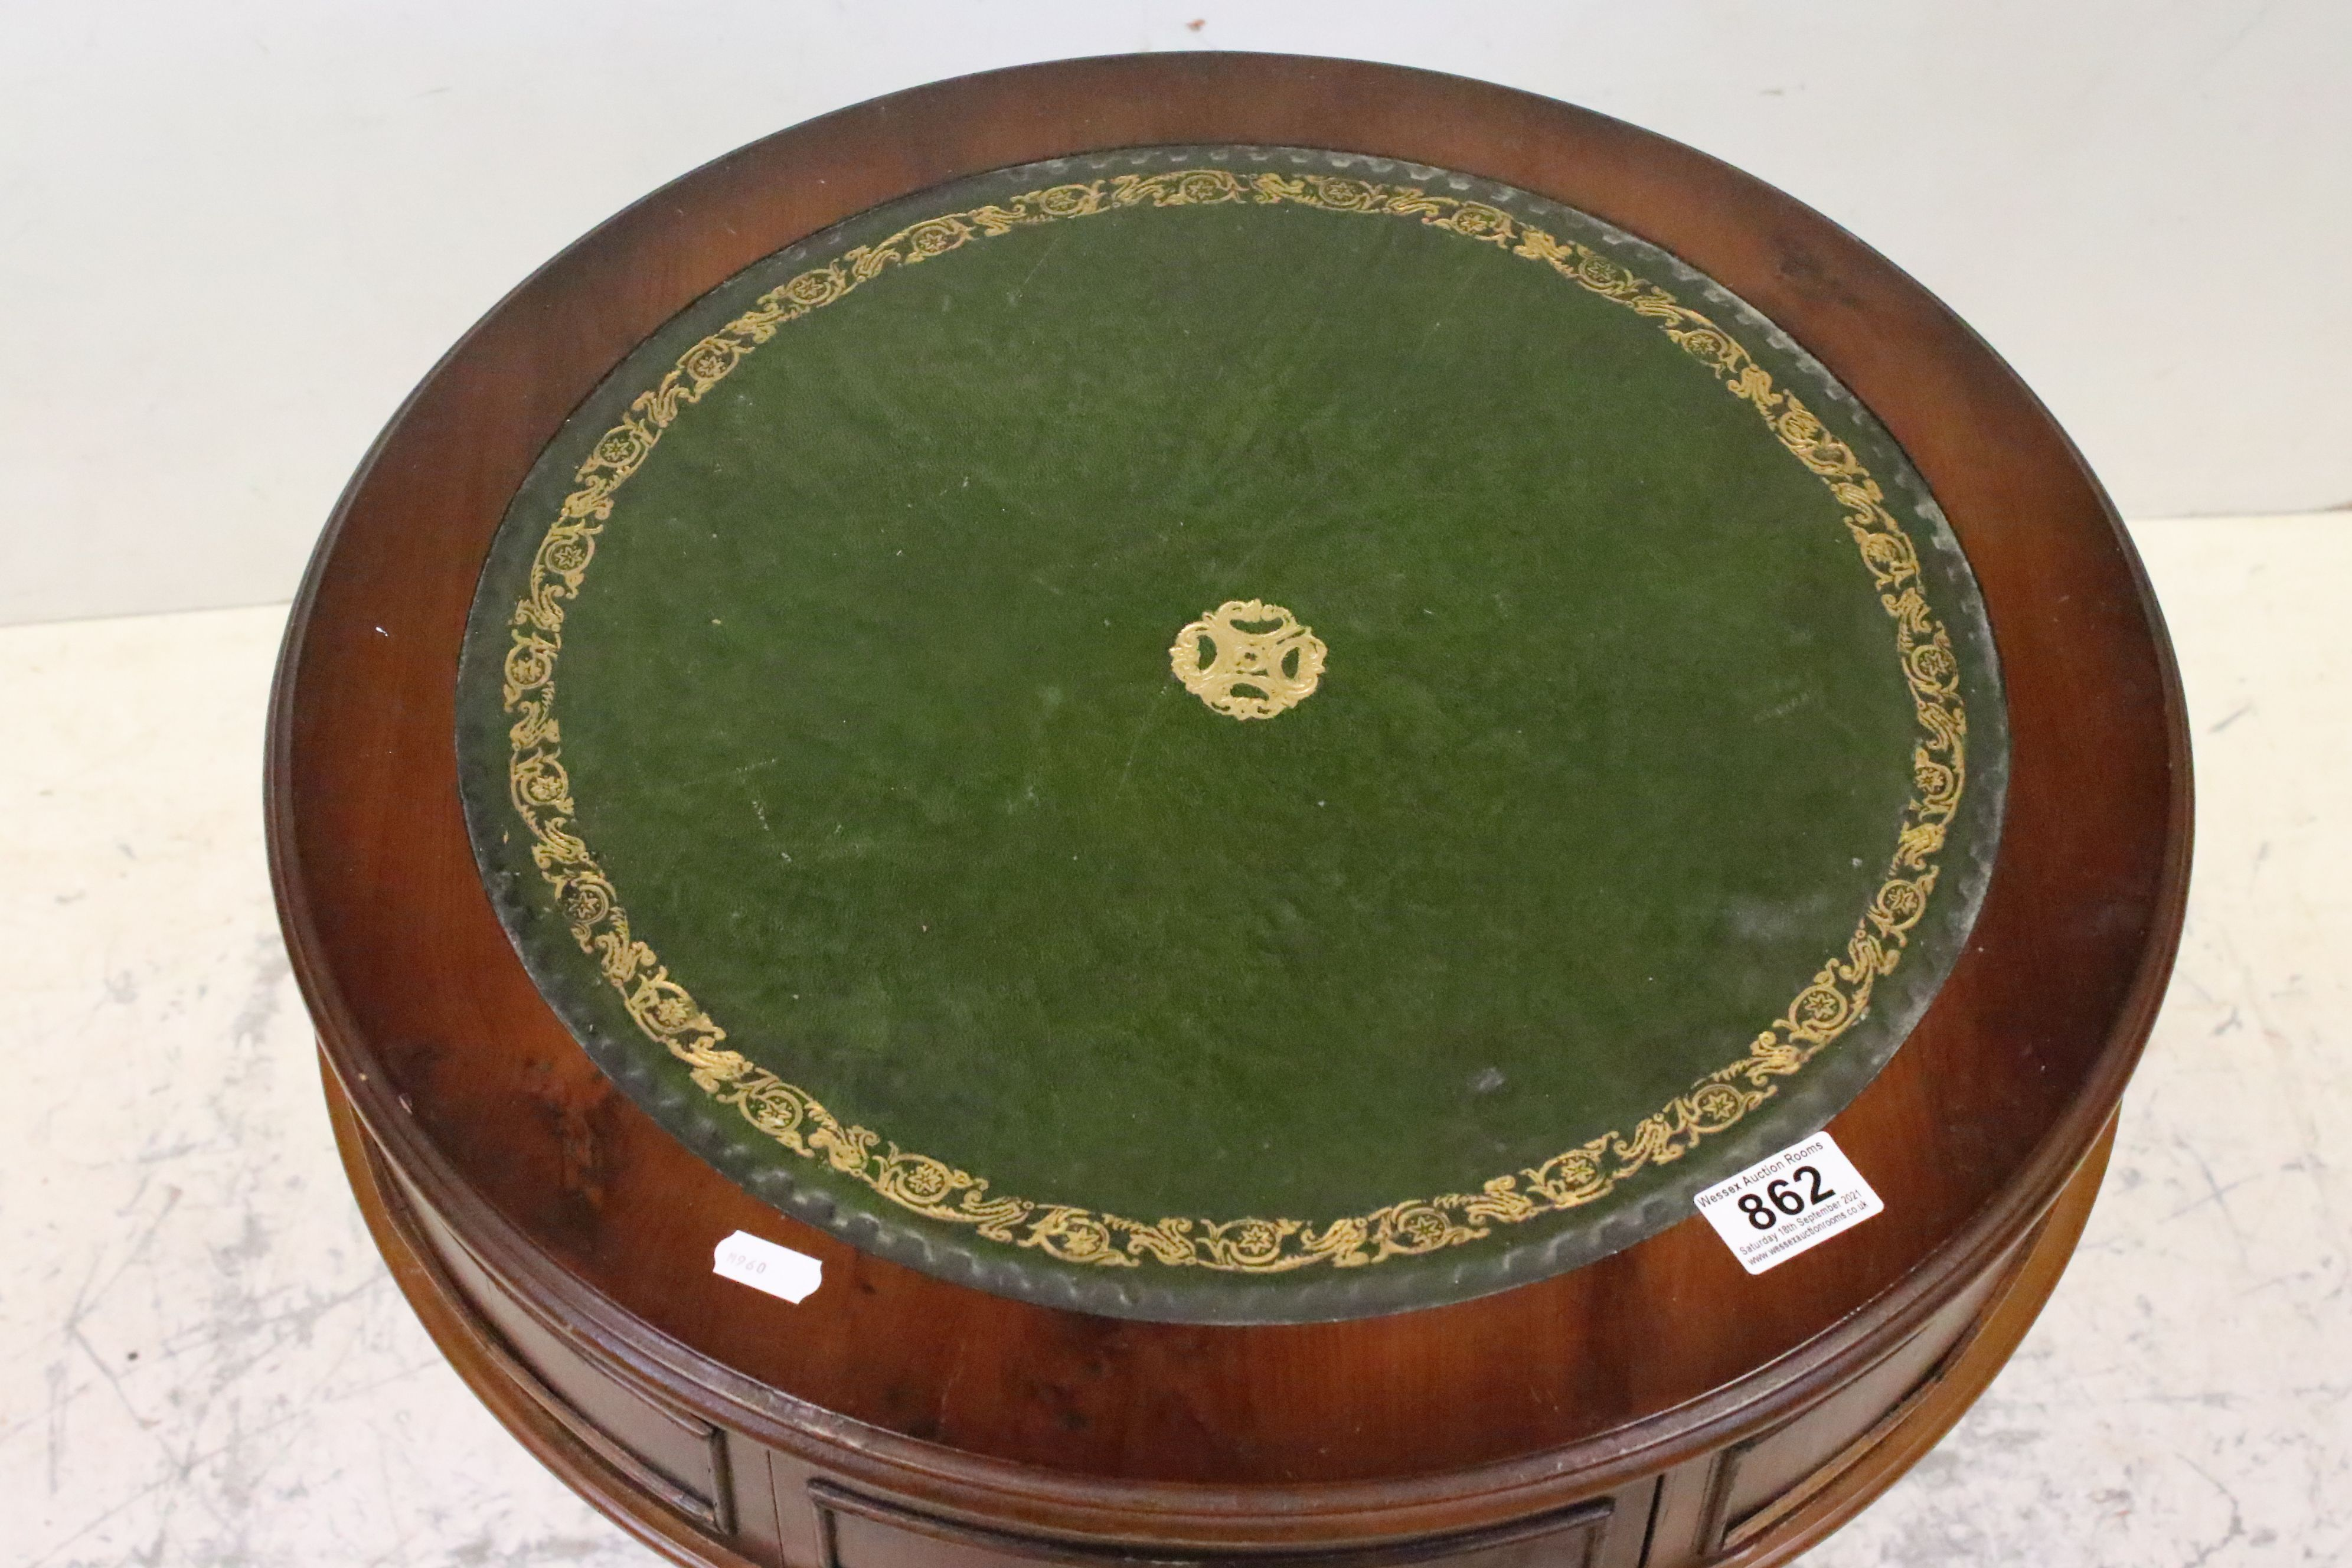 Reproduction Drum Table with Green Leather Inset Top, 49cms wide x 62cms high - Image 3 of 4